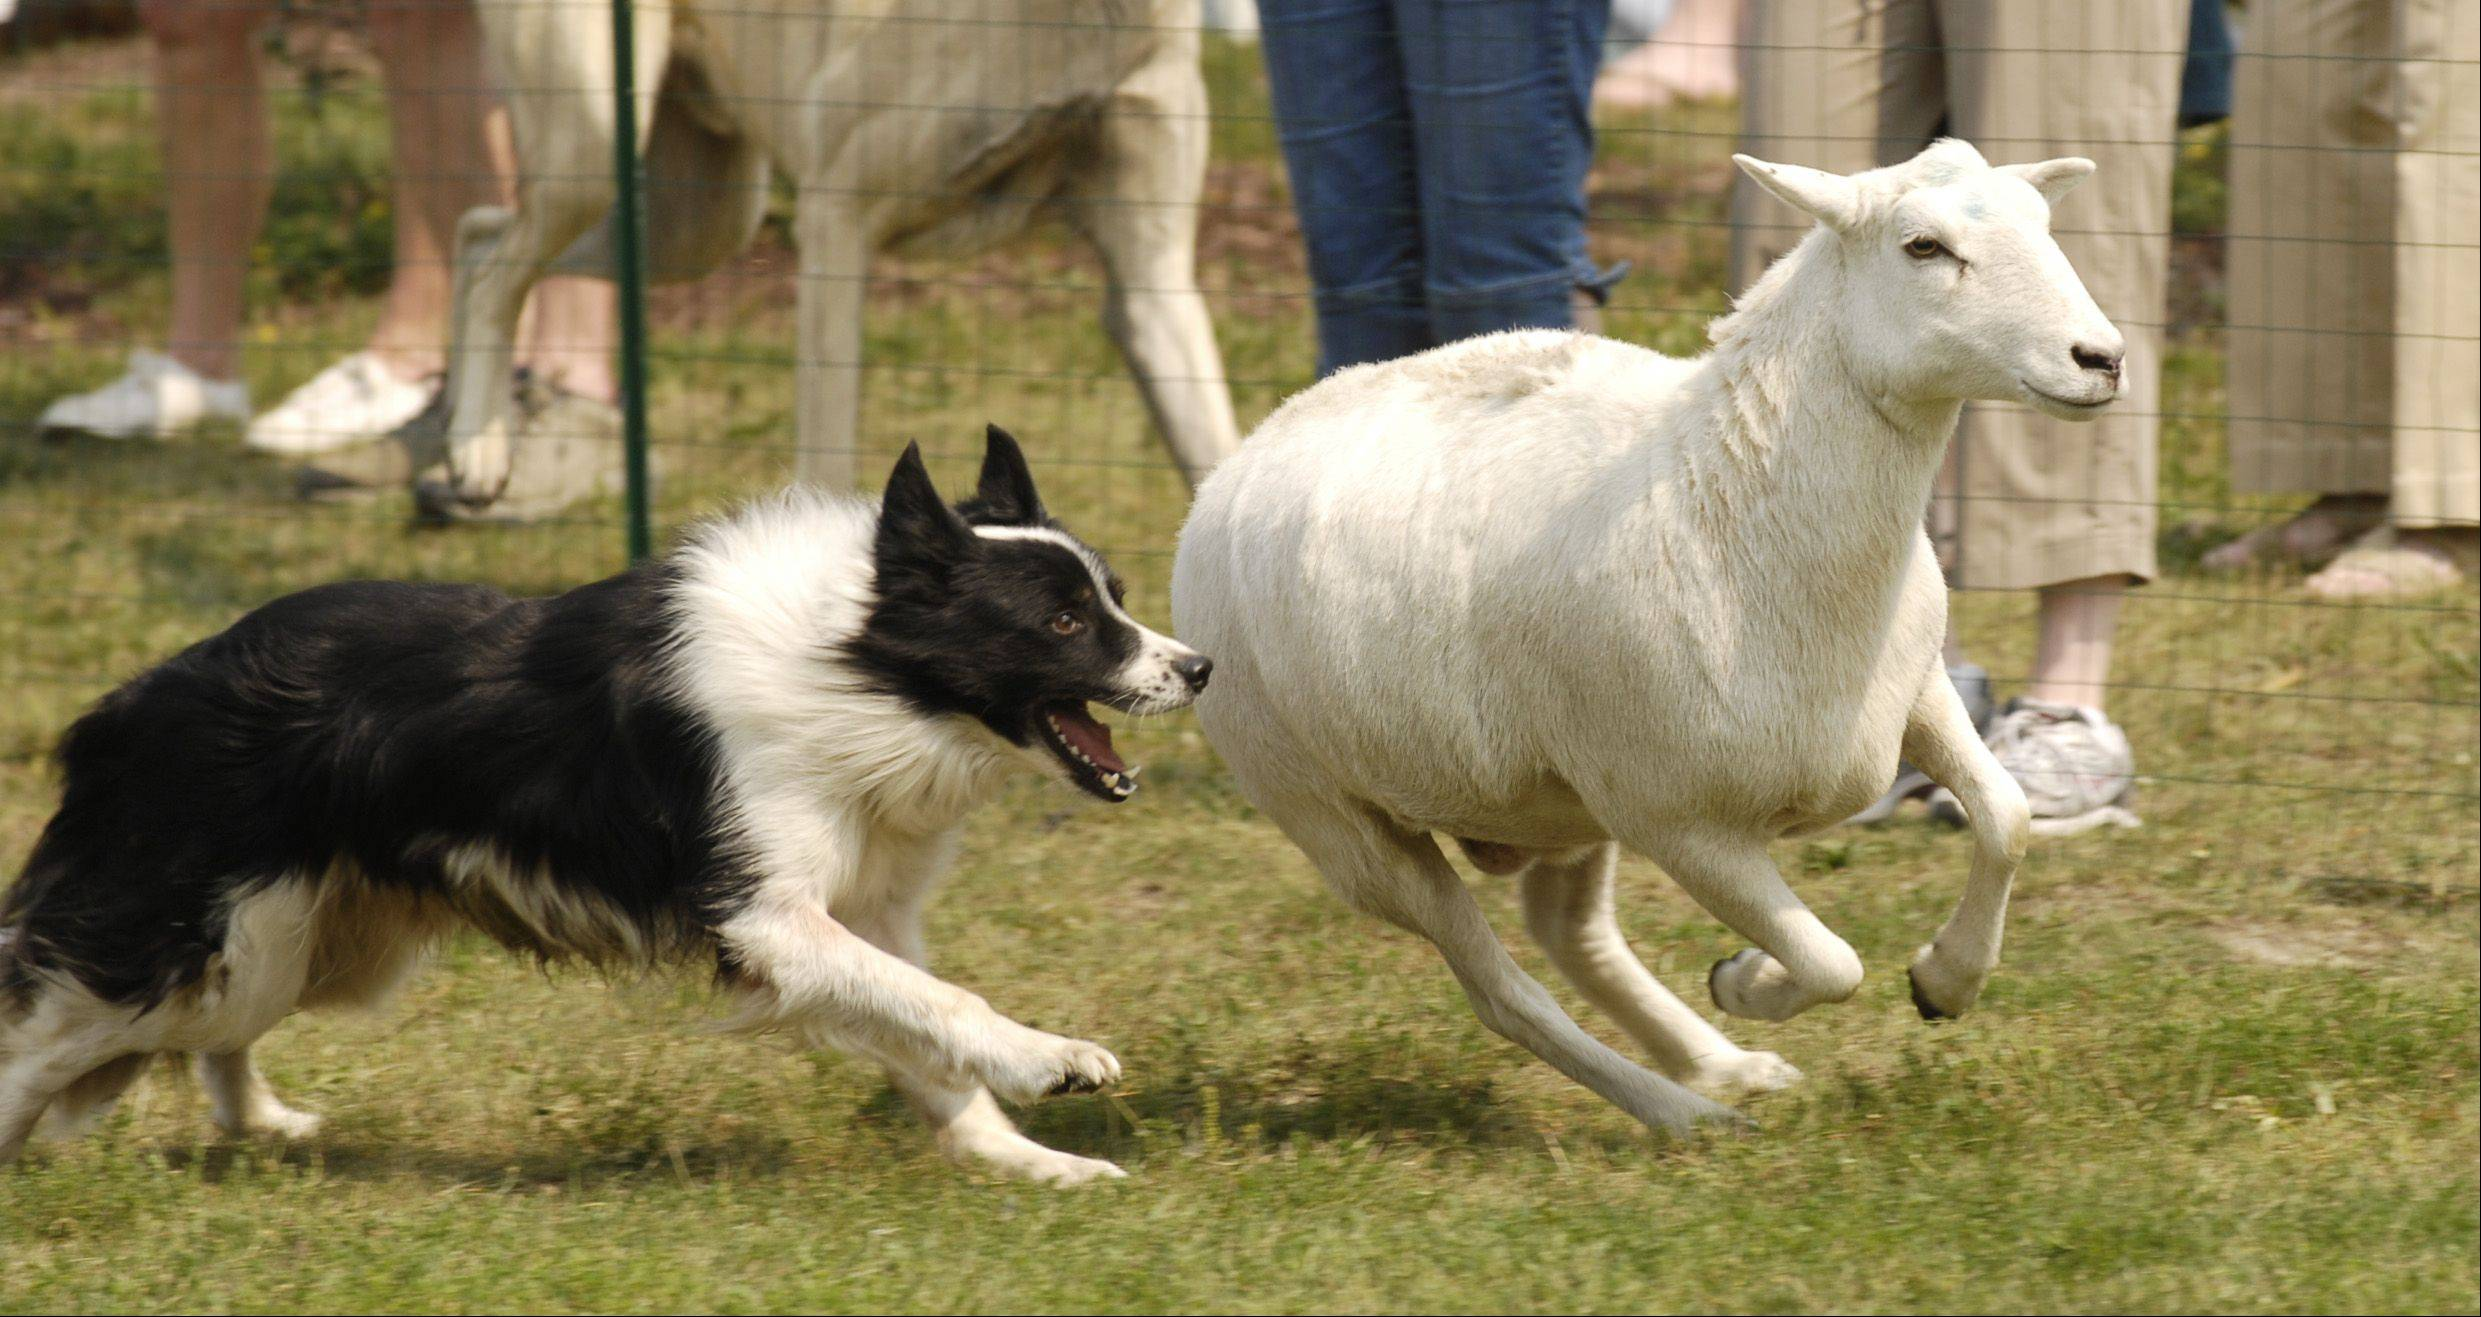 Border Collie �Cap,� from Heatherhope Farm in Sycamore, works sheep for spectators Sunday during the CSBarks Dog Festival at the Town Center in Carol Stream.